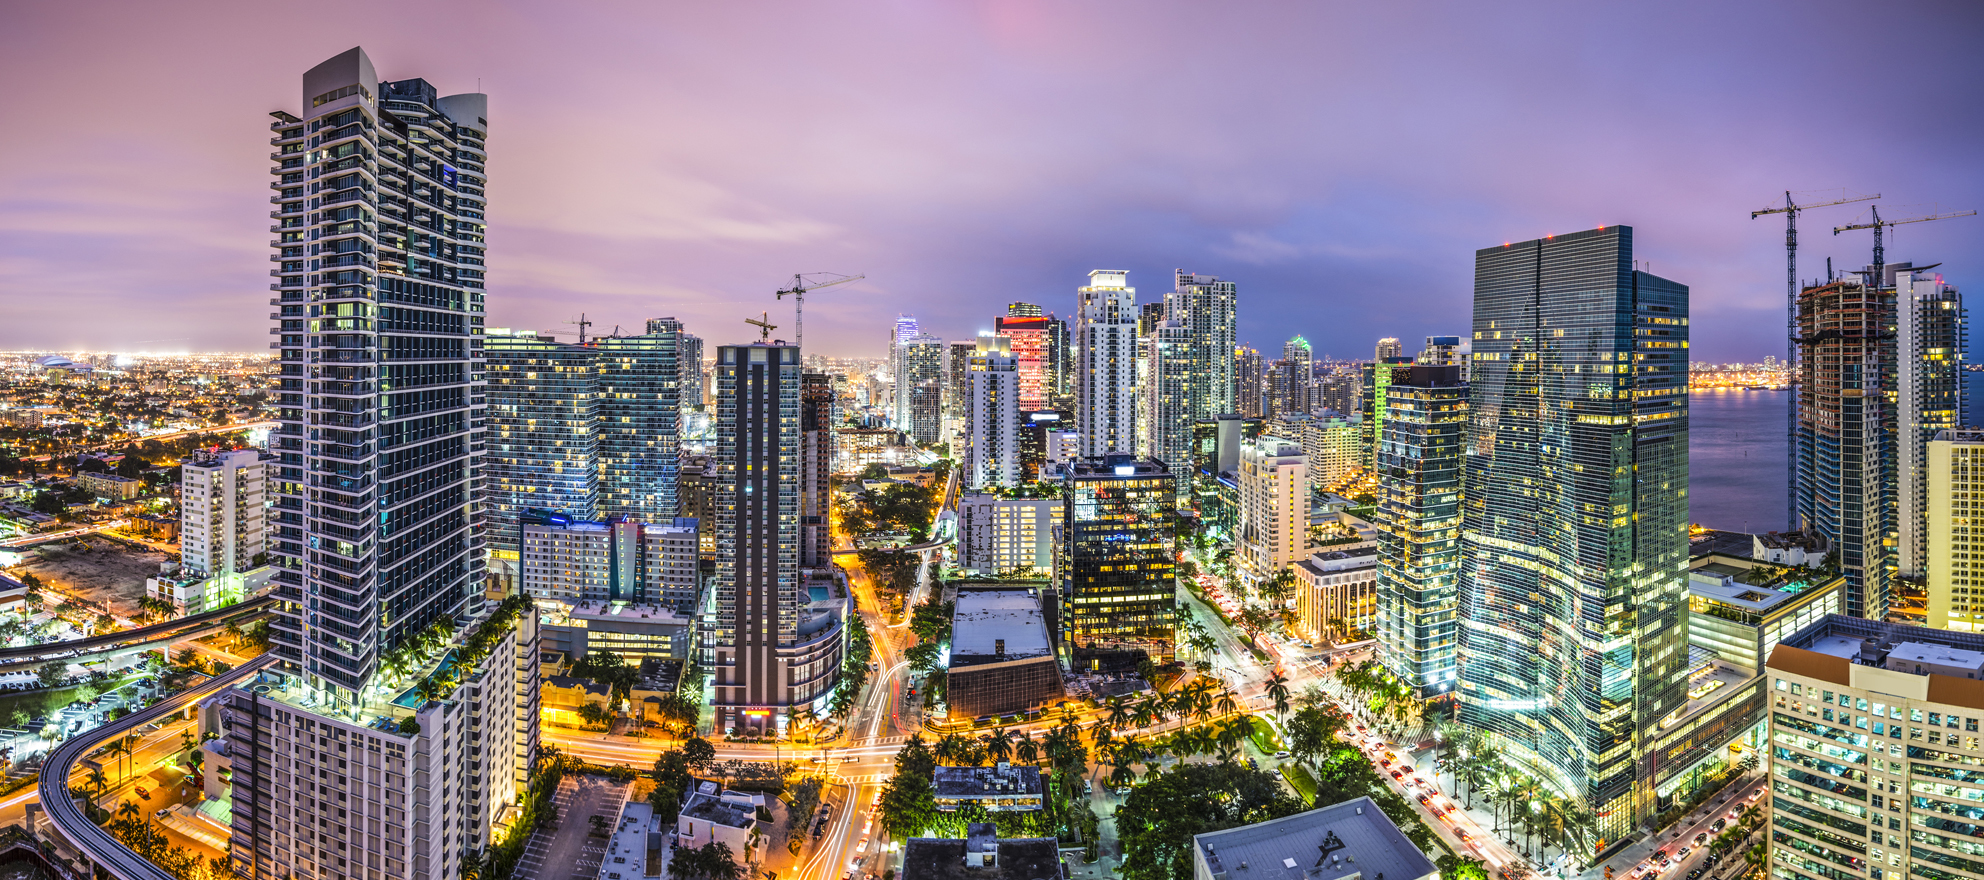 S&P Index finds Miami home prices rising